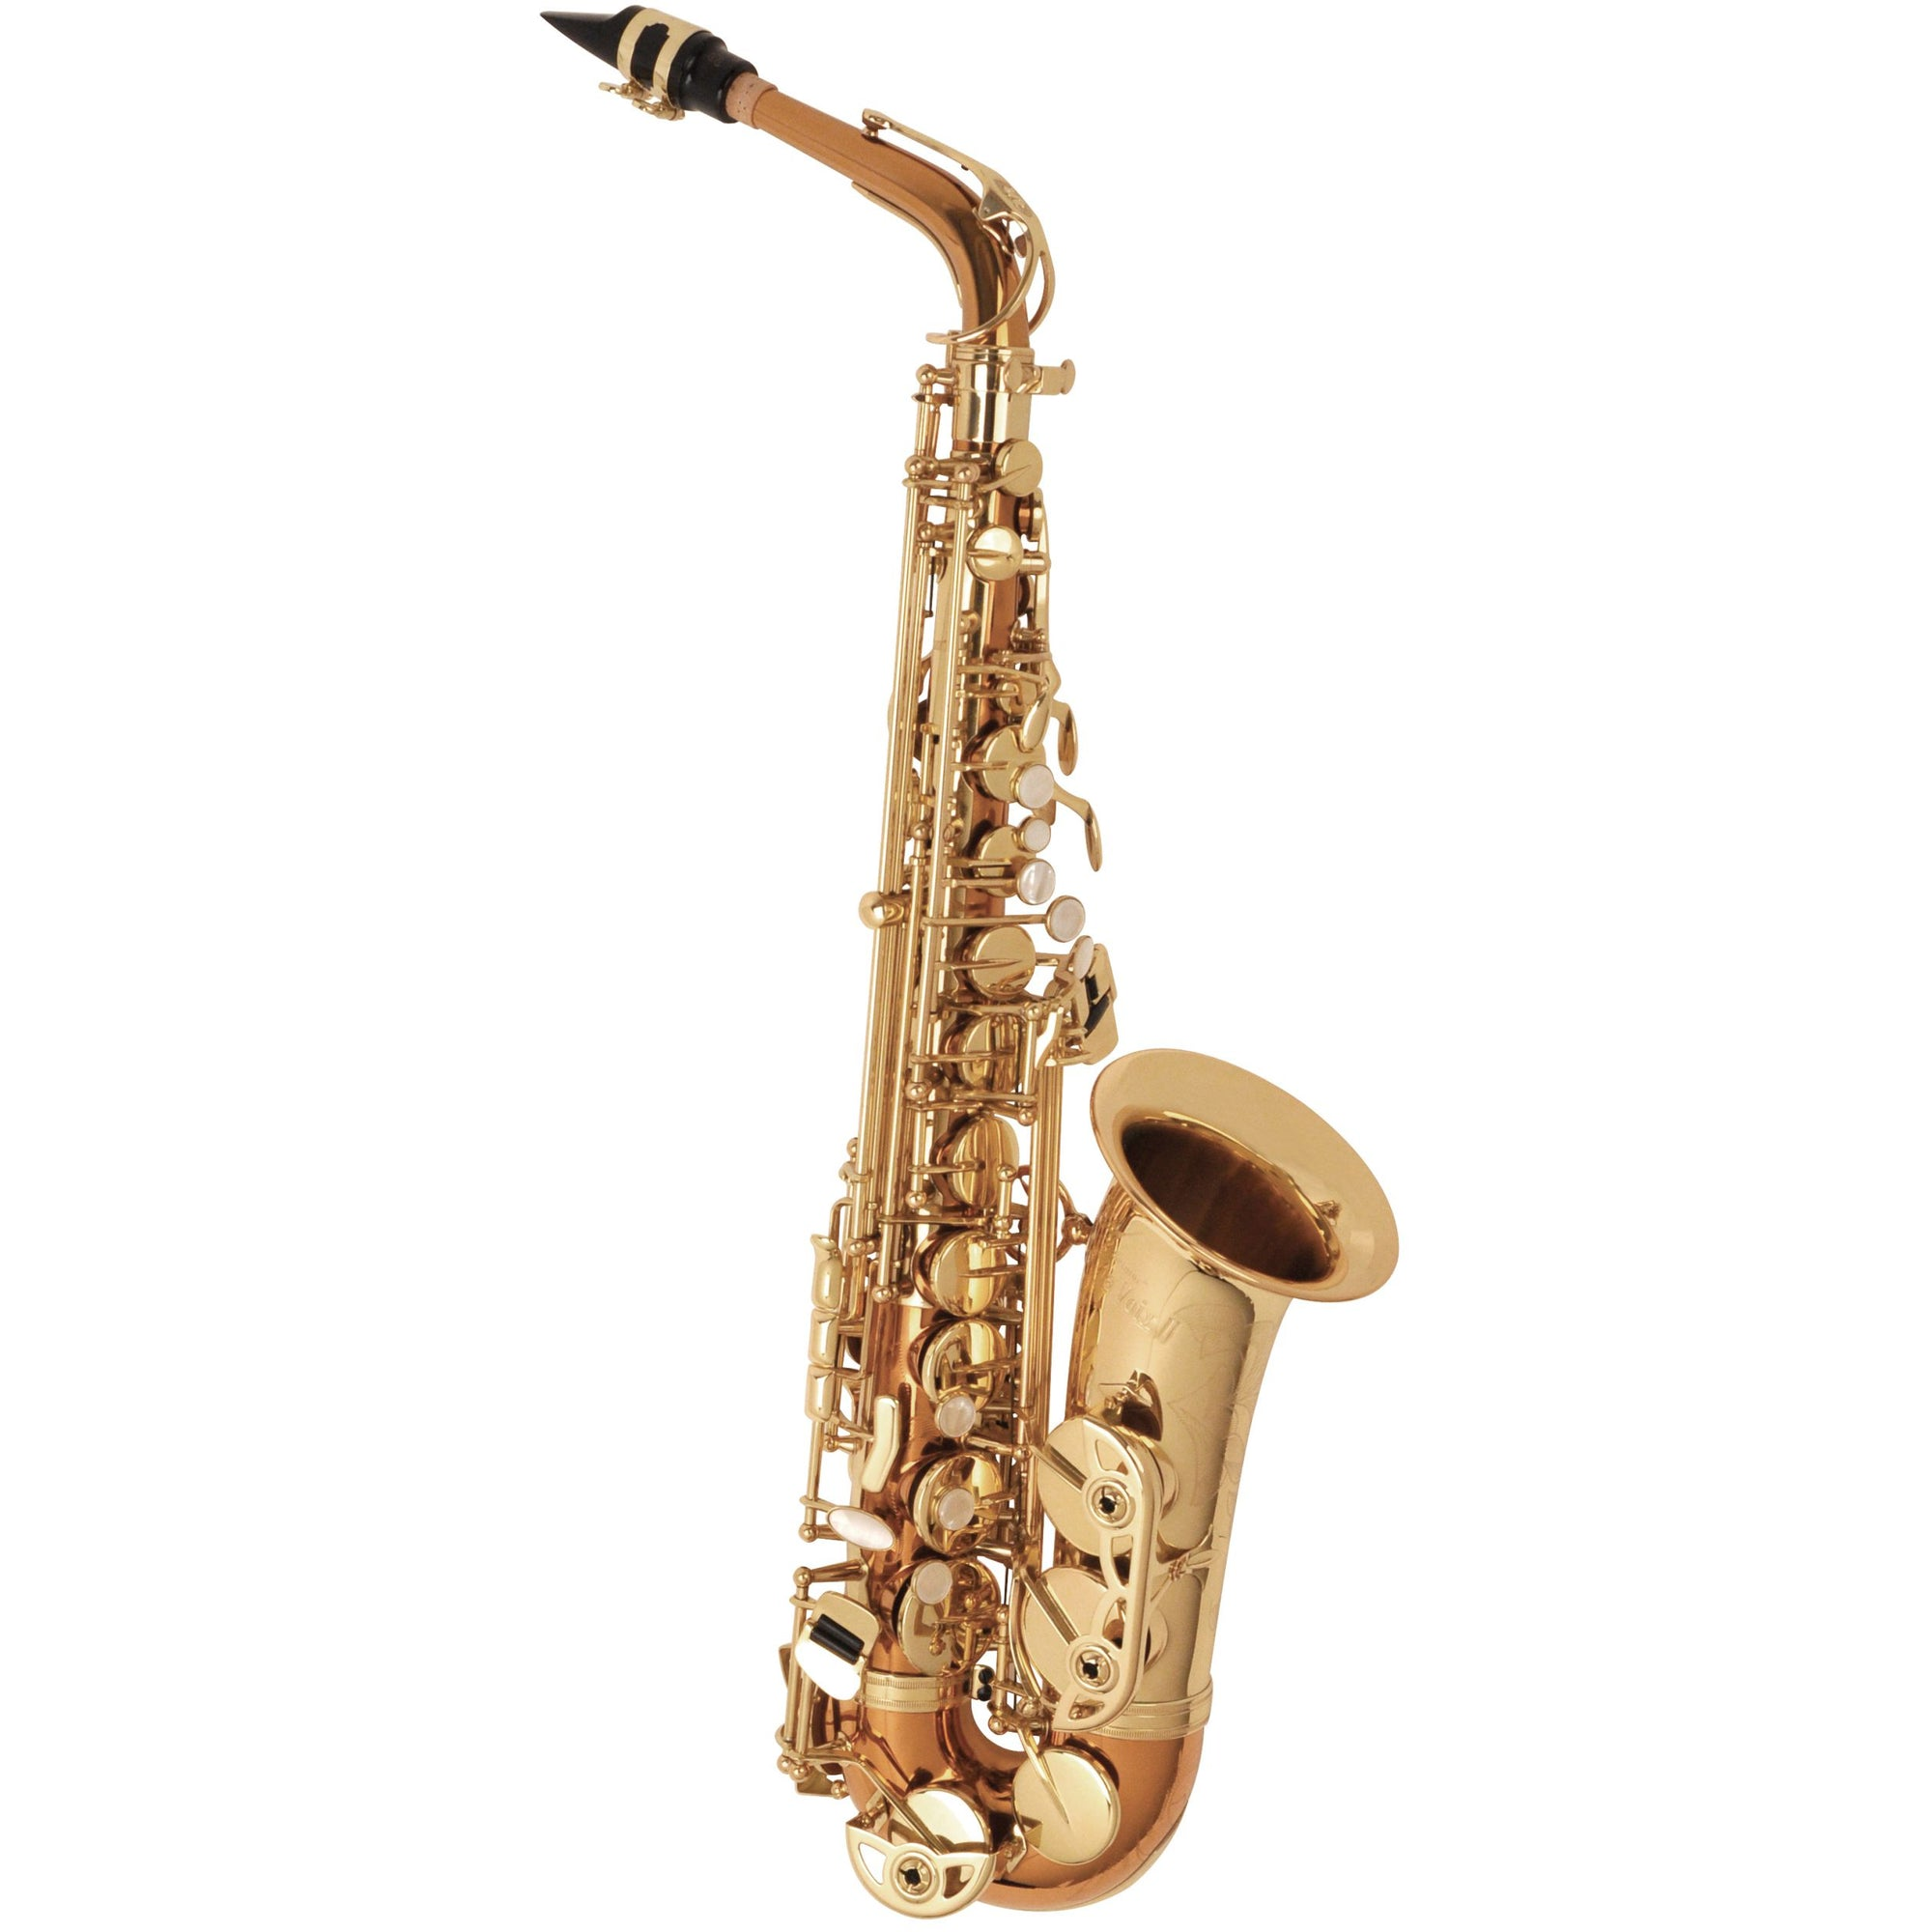 The Selmer SAS280RC LaVoix II Alto Saxophone Outfit - Copper Brass